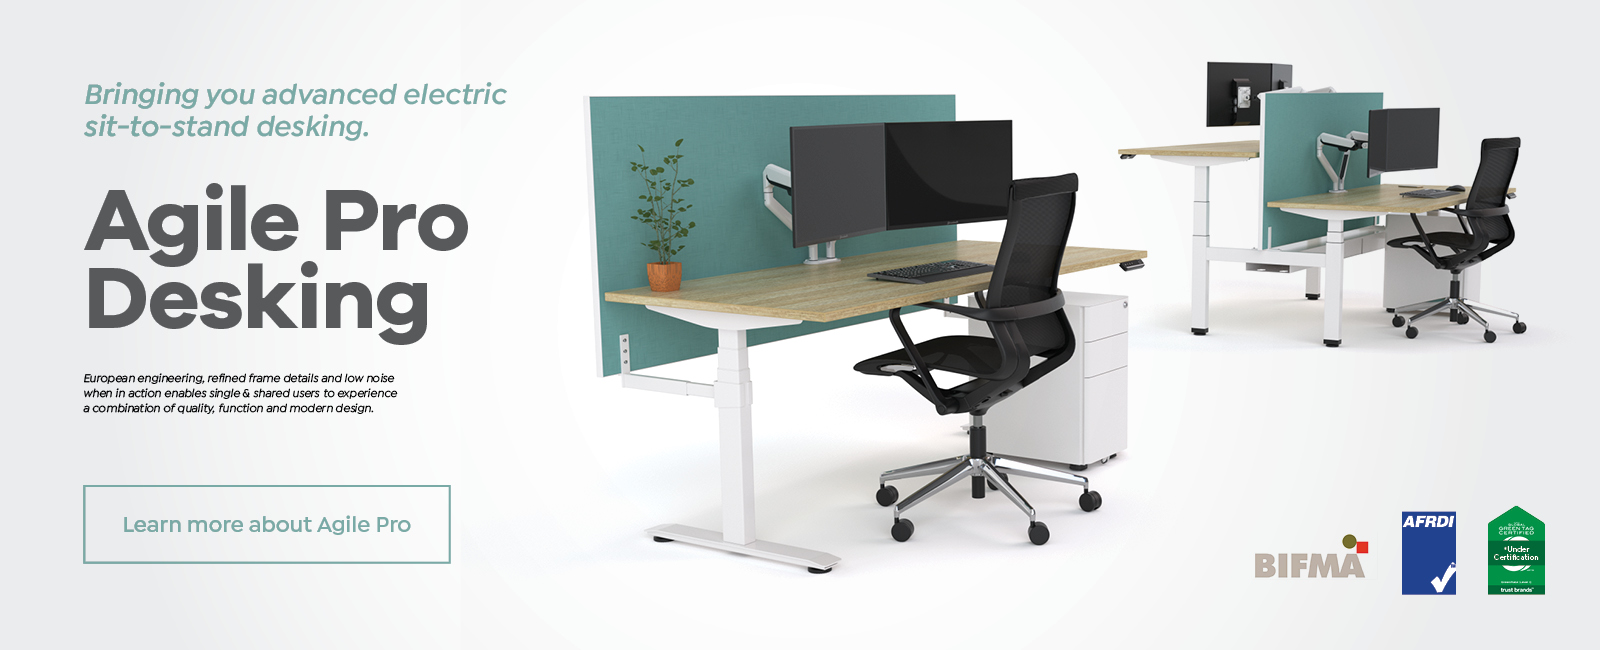 Home_Page_Agile_Pro_Large